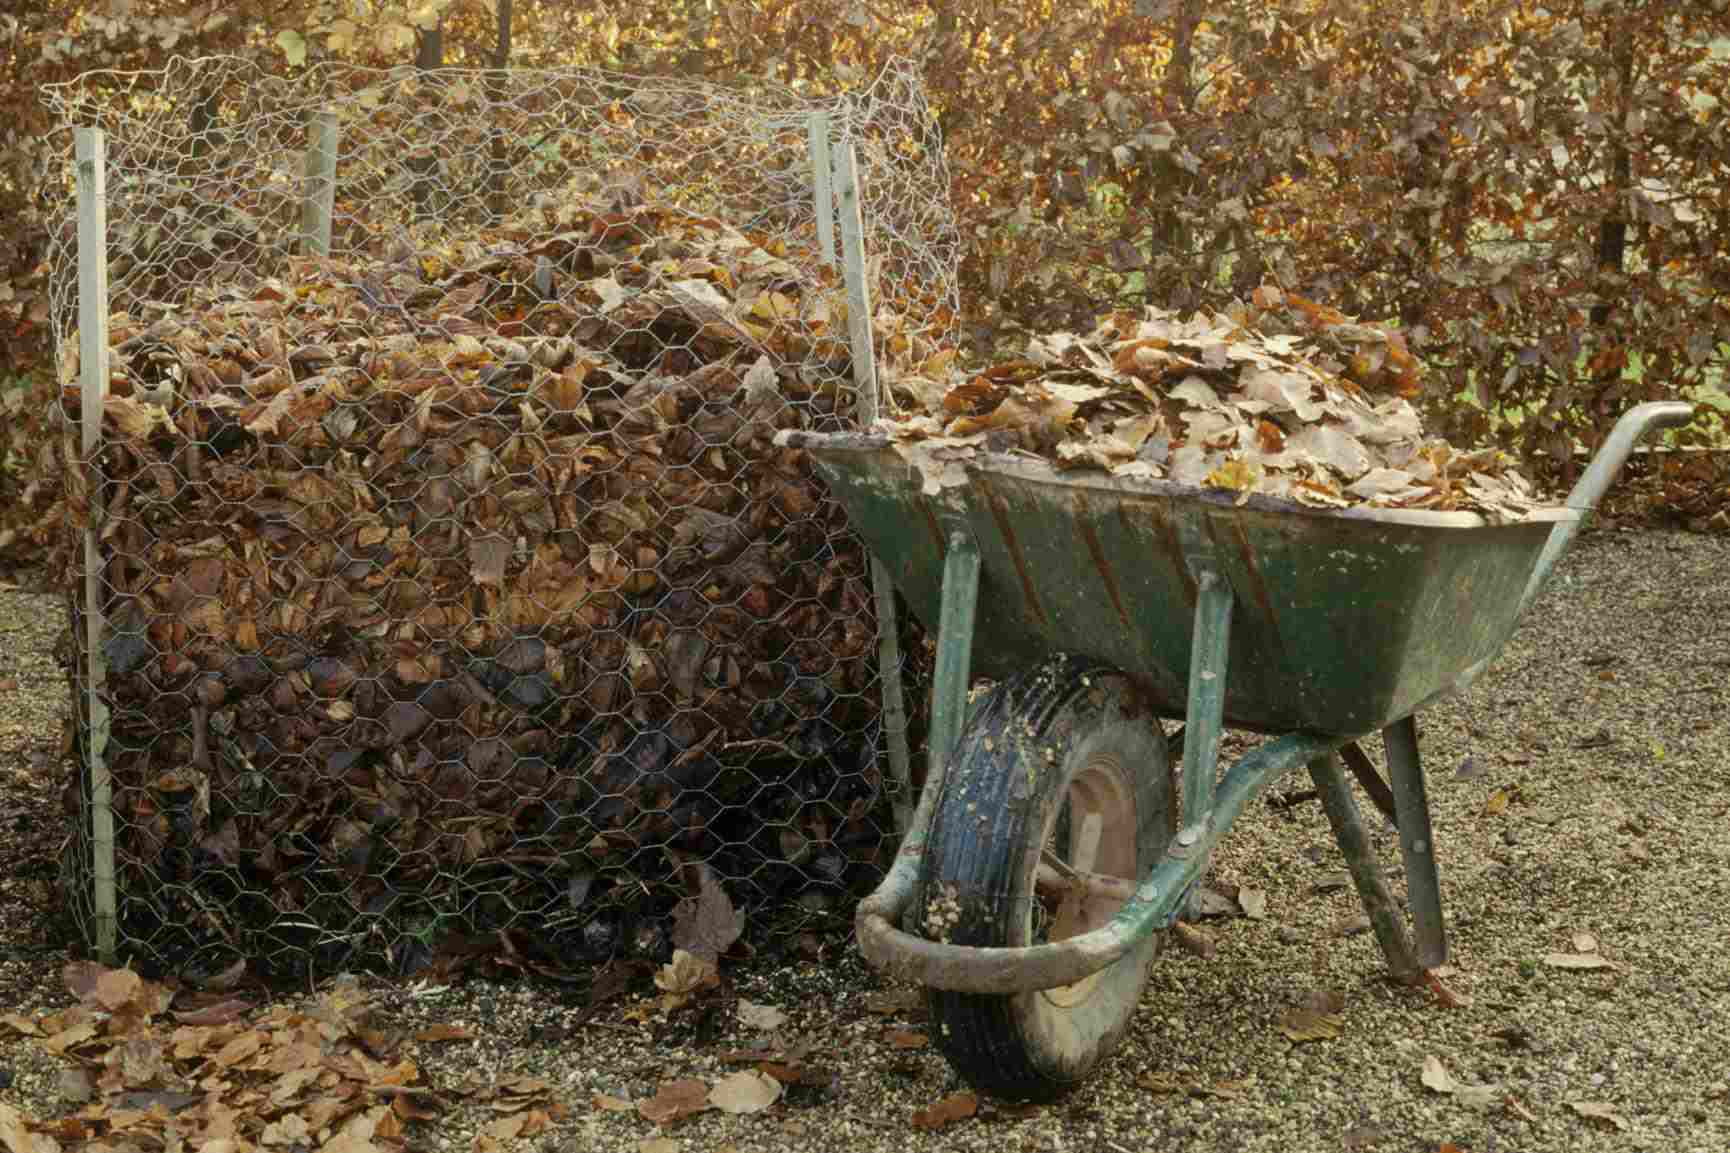 Composting leaves to make leaf mould, wheelbarrow of autumn leaves beside compost bin made of chicken wire netting.